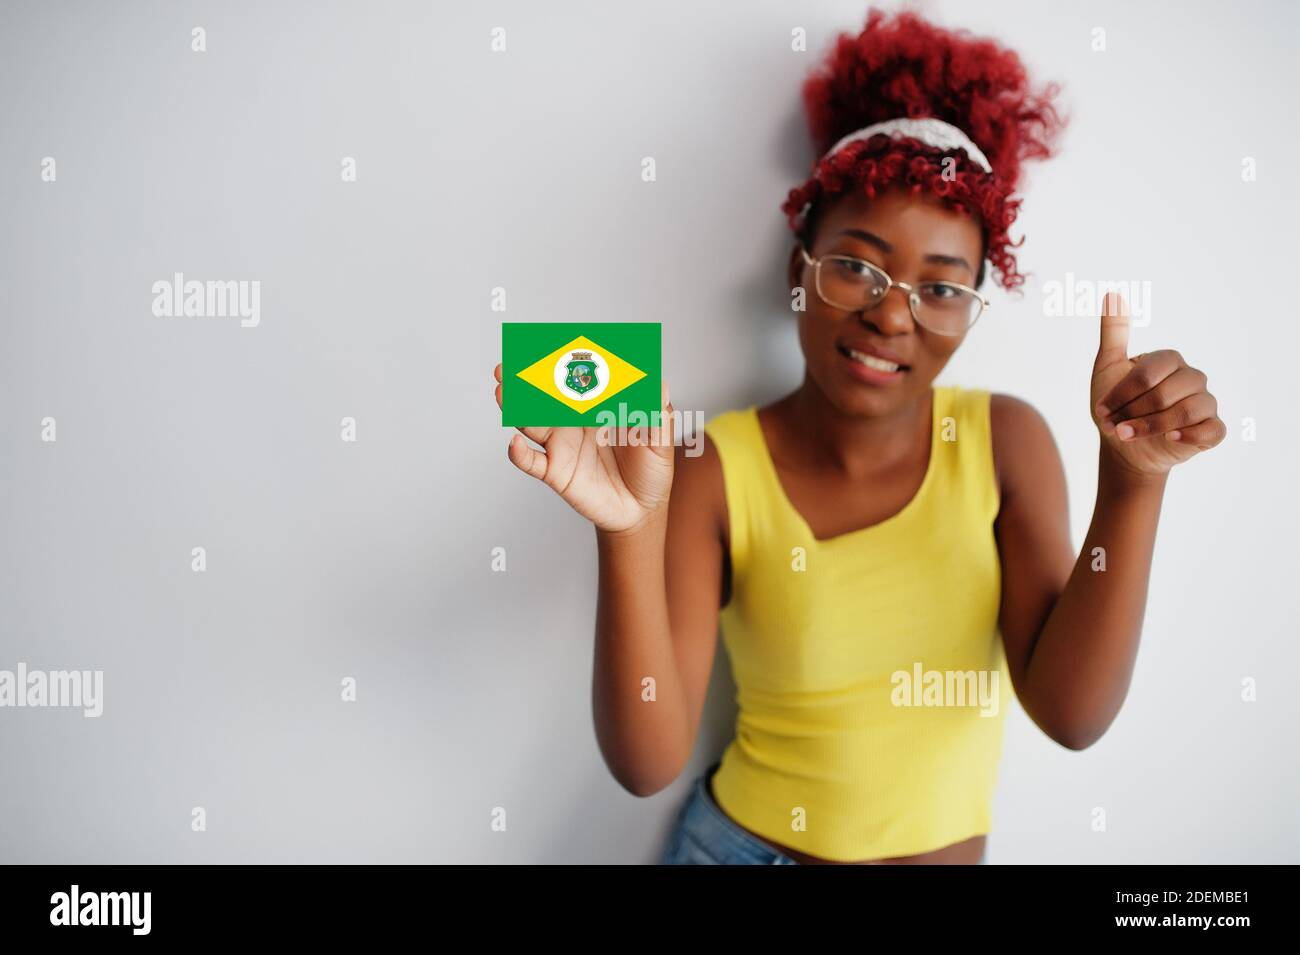 Brazilian woman with afro hair hold Ceara flag isolated on white background, show thumb up. States of Brazil concept. Stock Photo